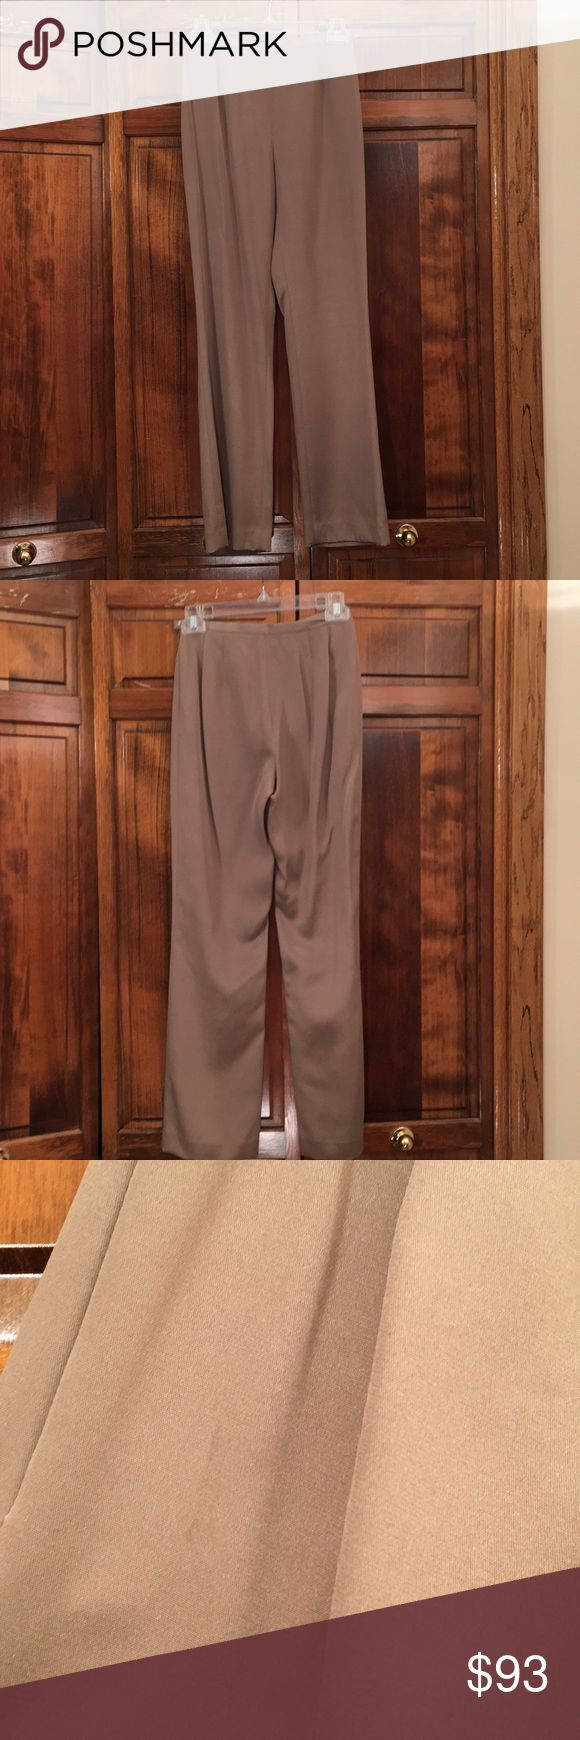 Lafayette 148 New York brown slacks. Lafayette 148 New York brown slacks, small stain on front by zipper, Measurements. Pant: 38 1/2 in. Inseam: 29 in. Waist: 25 in. Lafayette 148 New York Pants Trousers